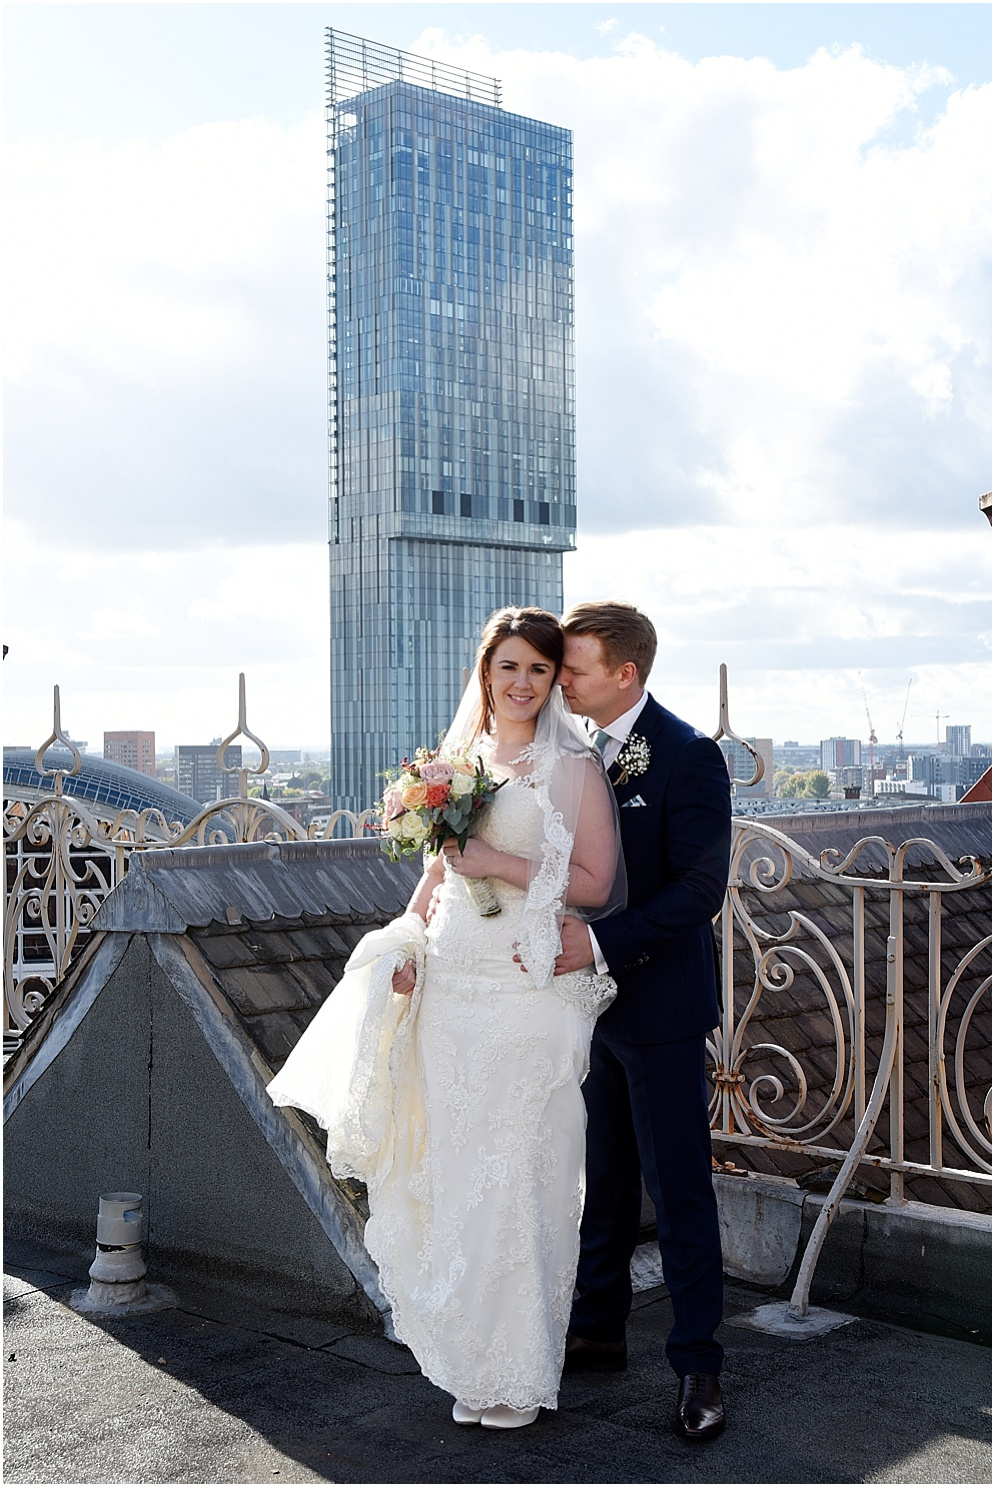 Bride and groom on the roof of the Midland Hotel in Manchester on their wedding day